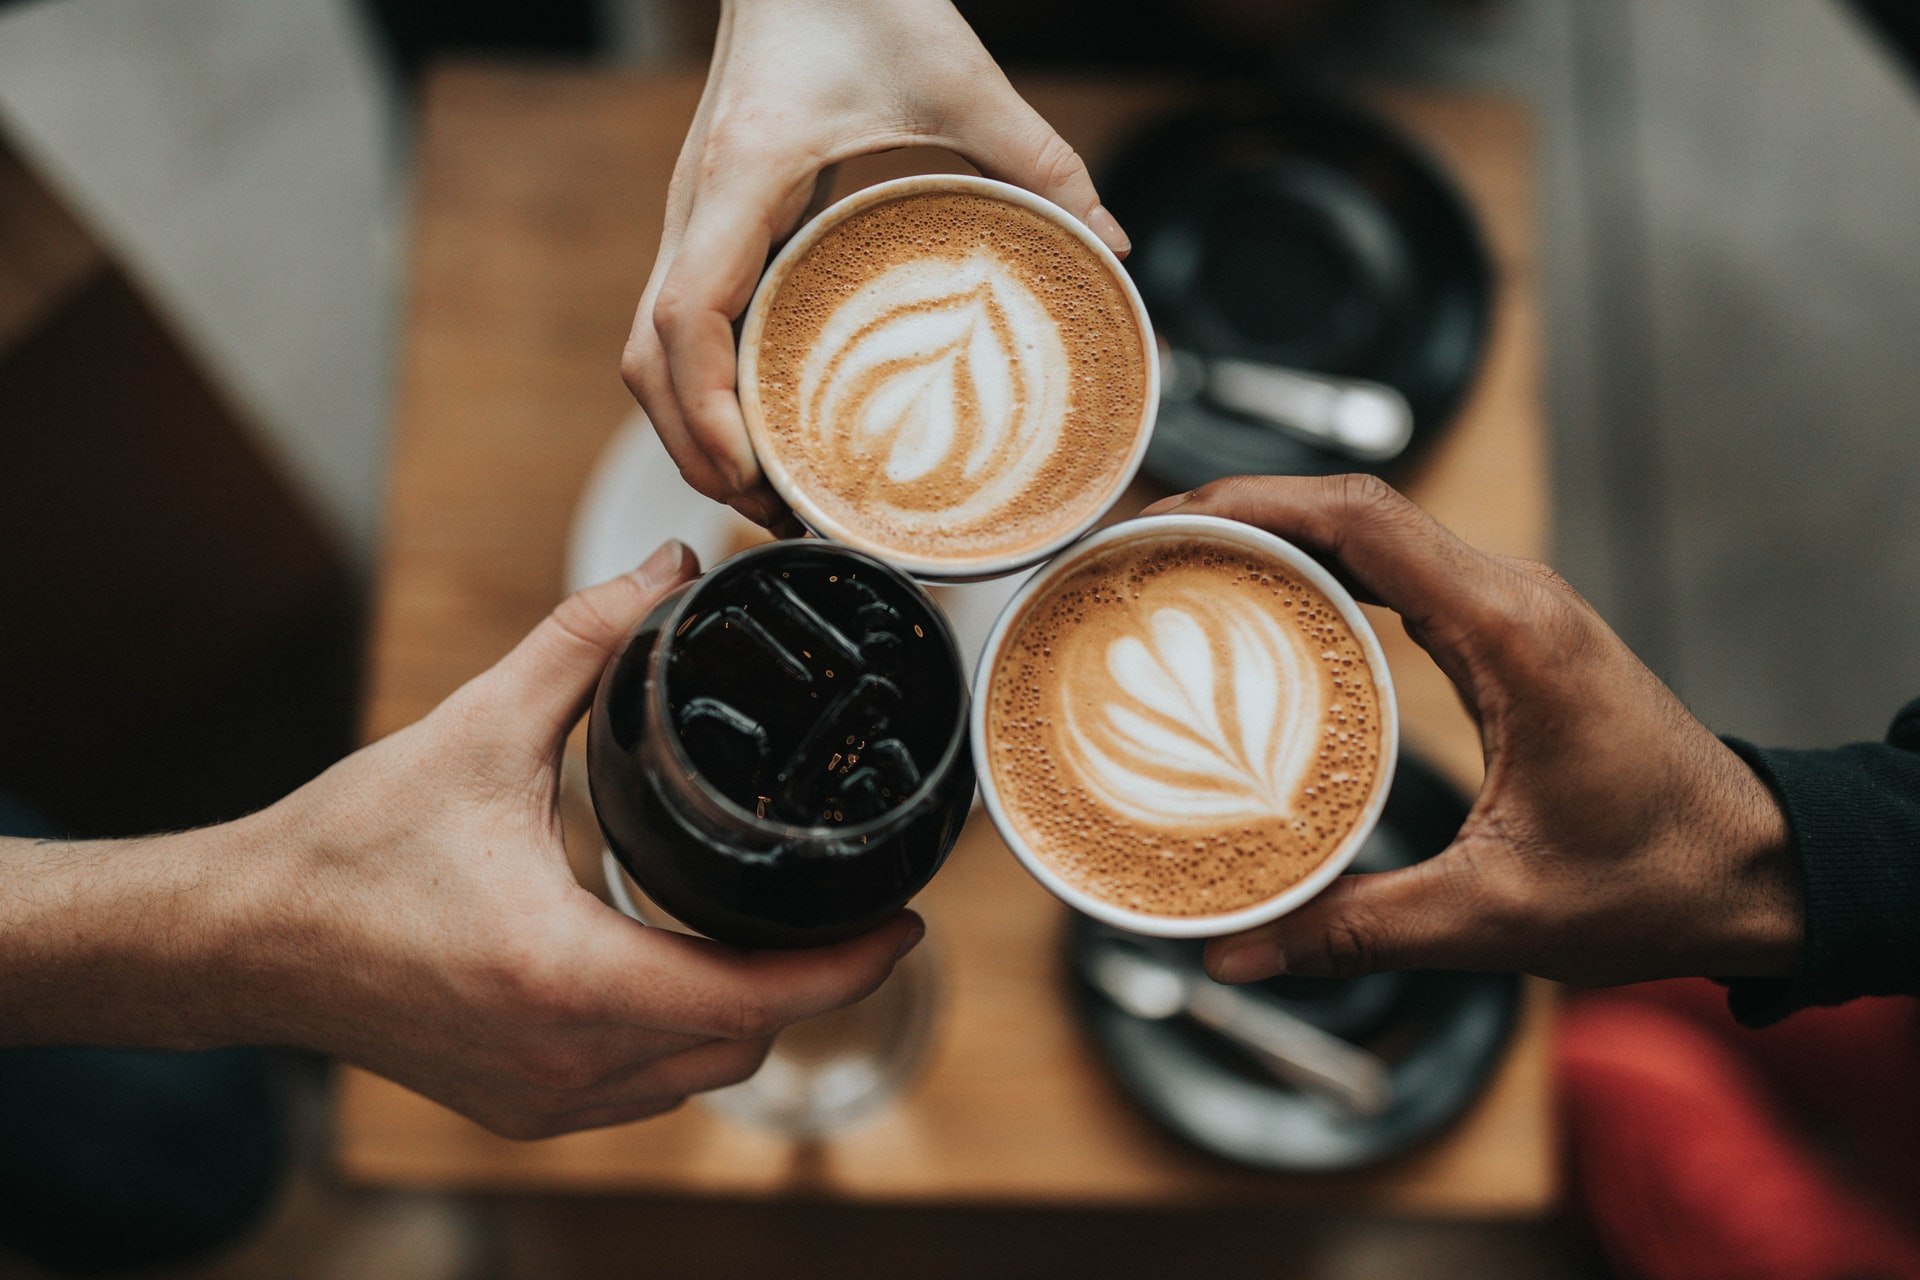 Top-view photo of three hands joining three cups of coffee in the middle of the shot